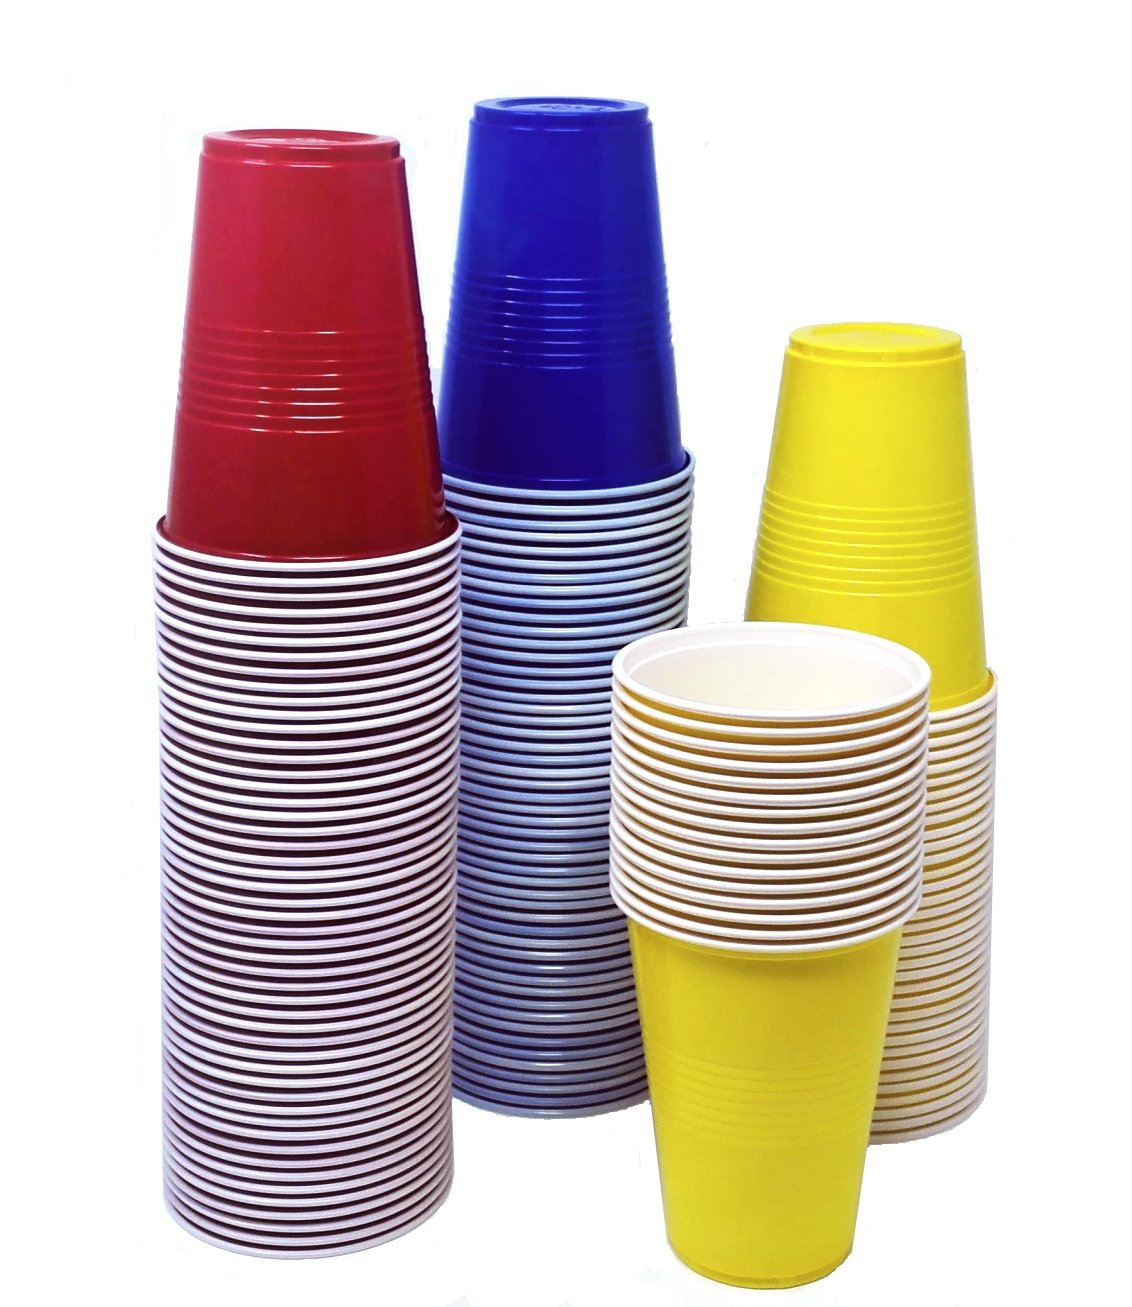 TashiBox 16 oz disposable plastic party cups - 150 count - Assorted color: 50 red, 50 blue, 50 yellow cups by TashiBox